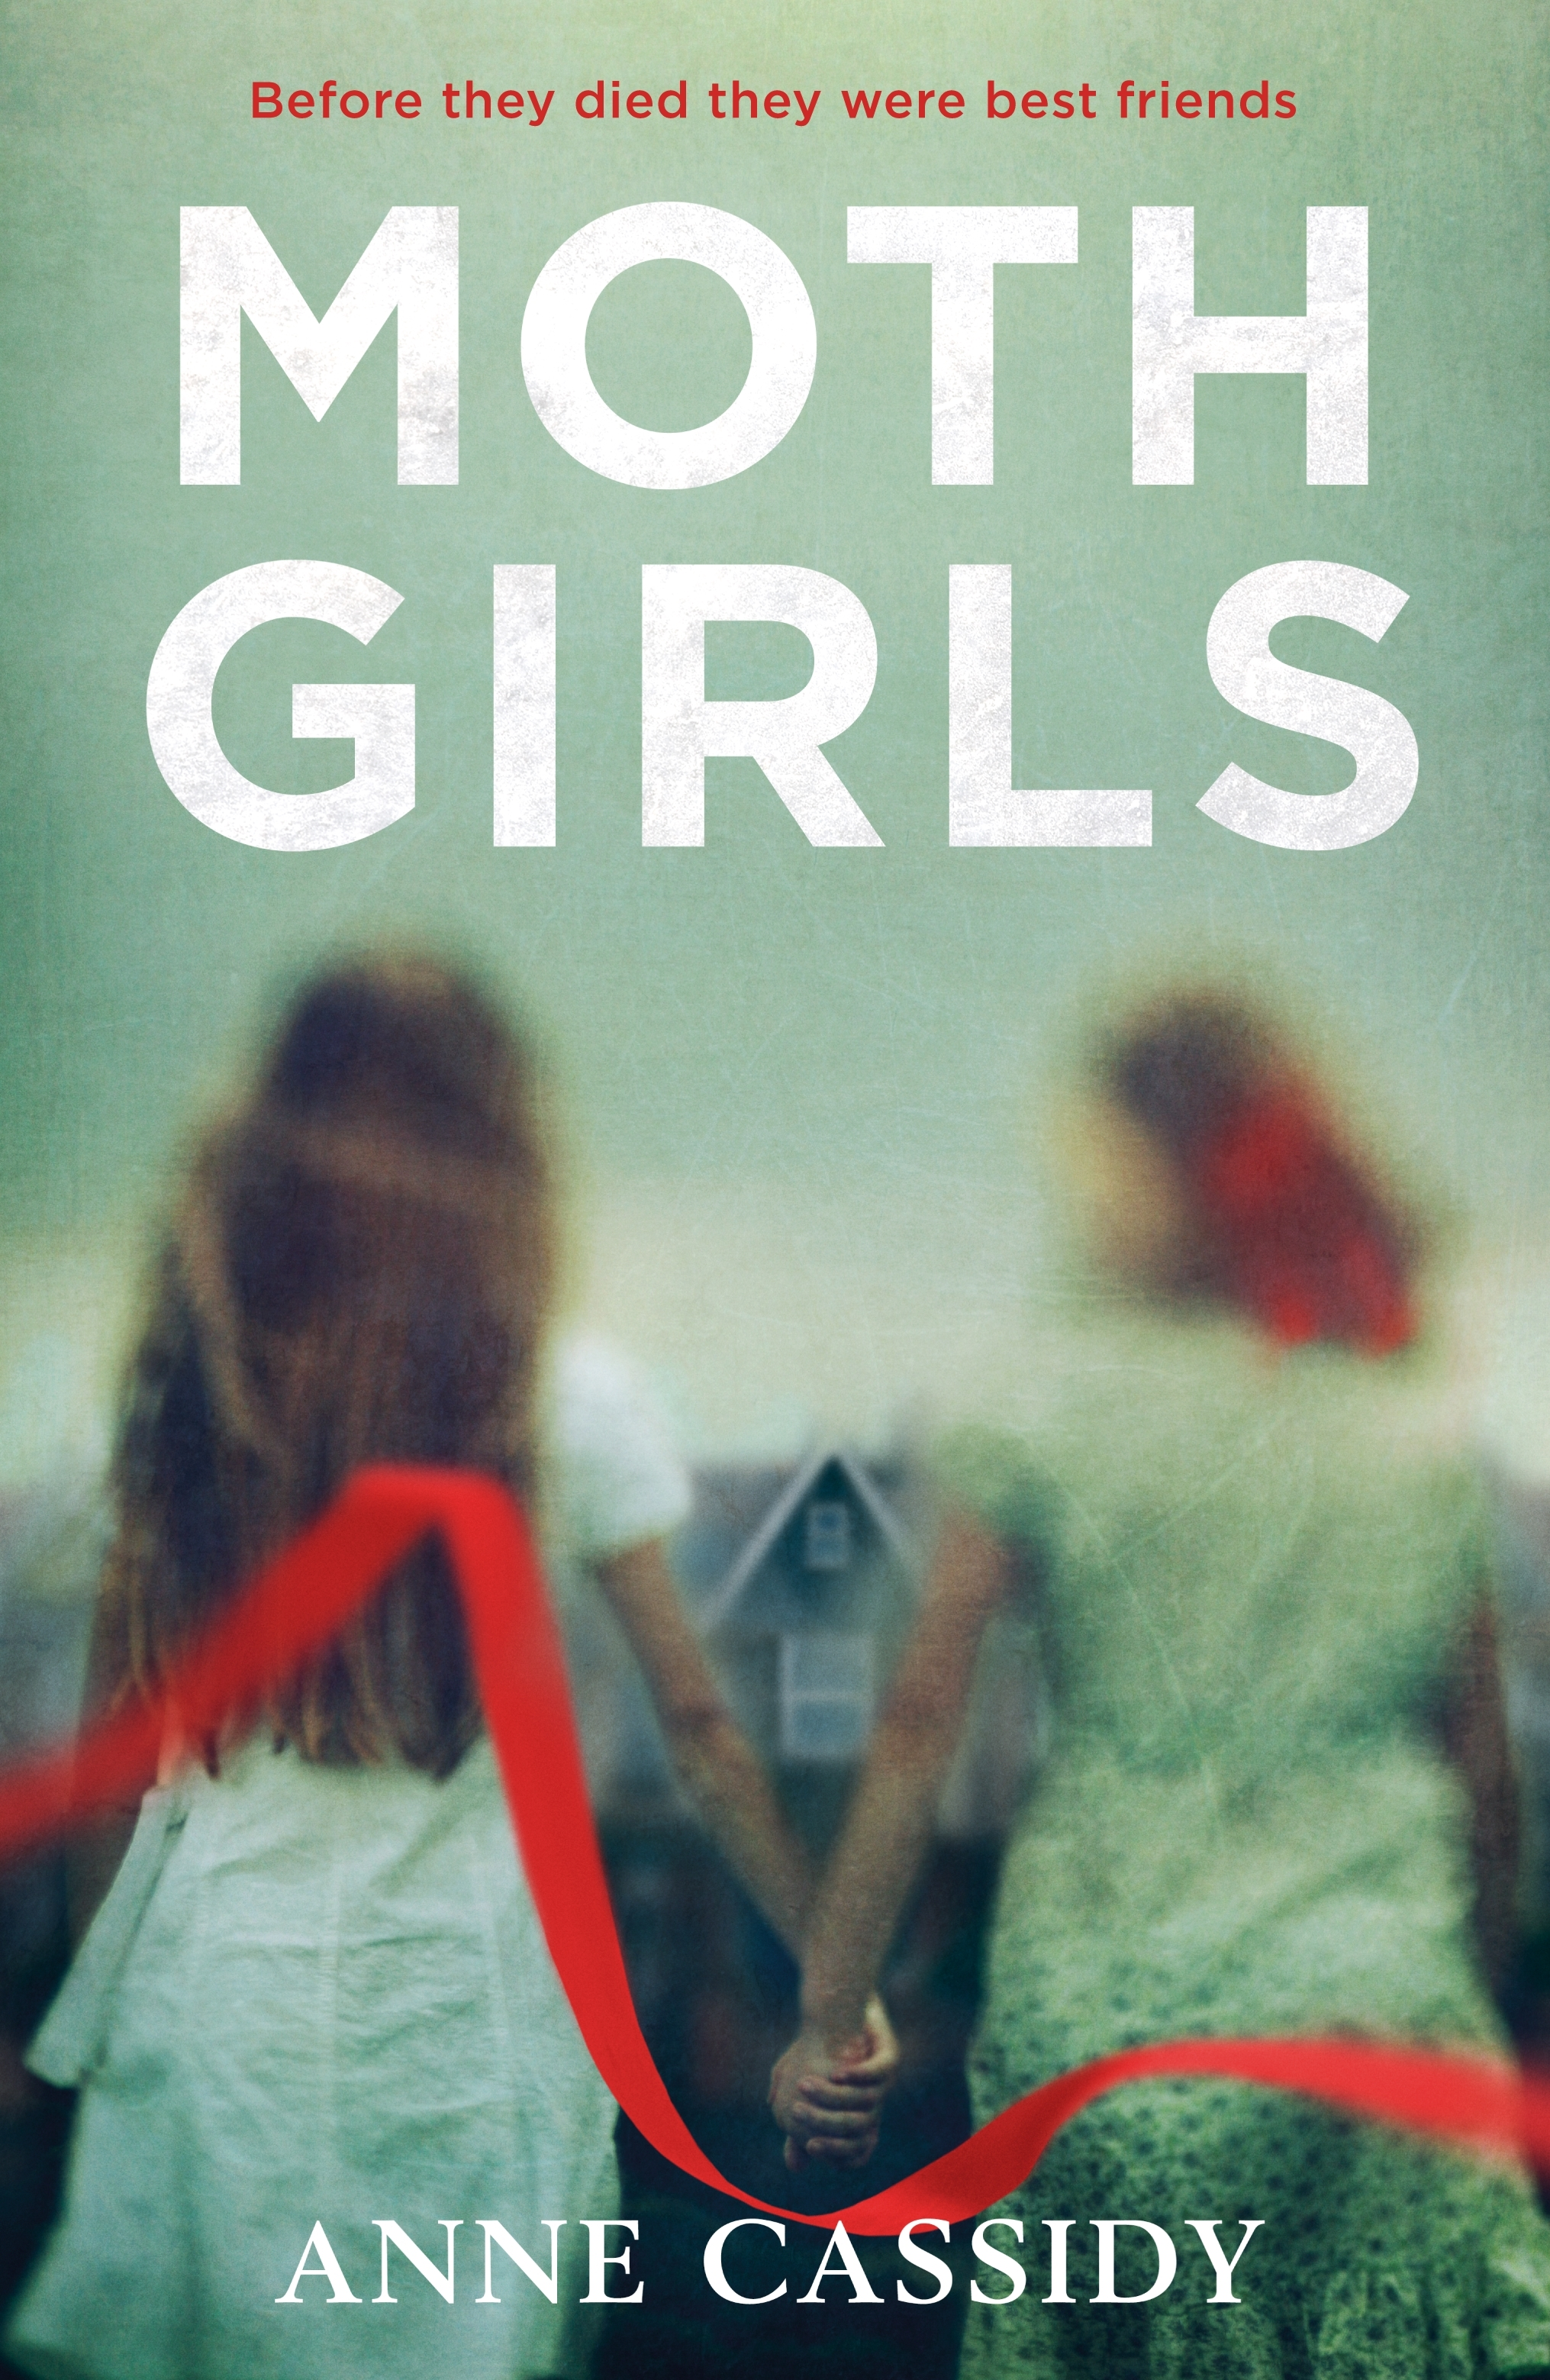 Moth Girls by Anne Cassidy